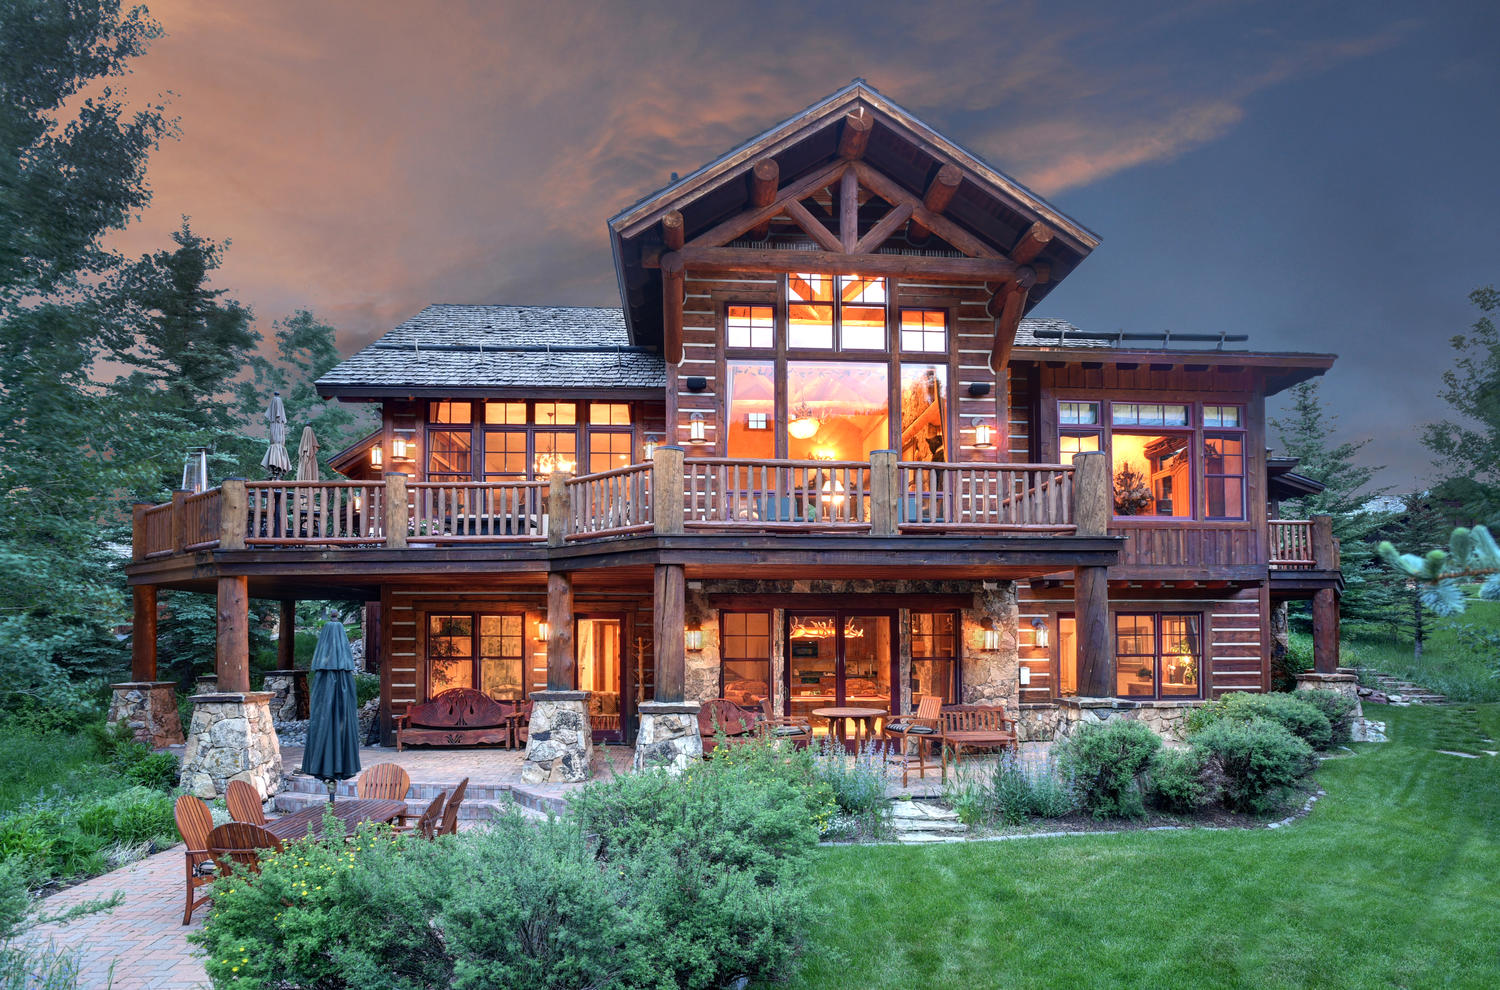 Single Family Home for Active at Cordillera Ranch Mountain Home 88 Cimarron Edwards, Colorado 81632 United States